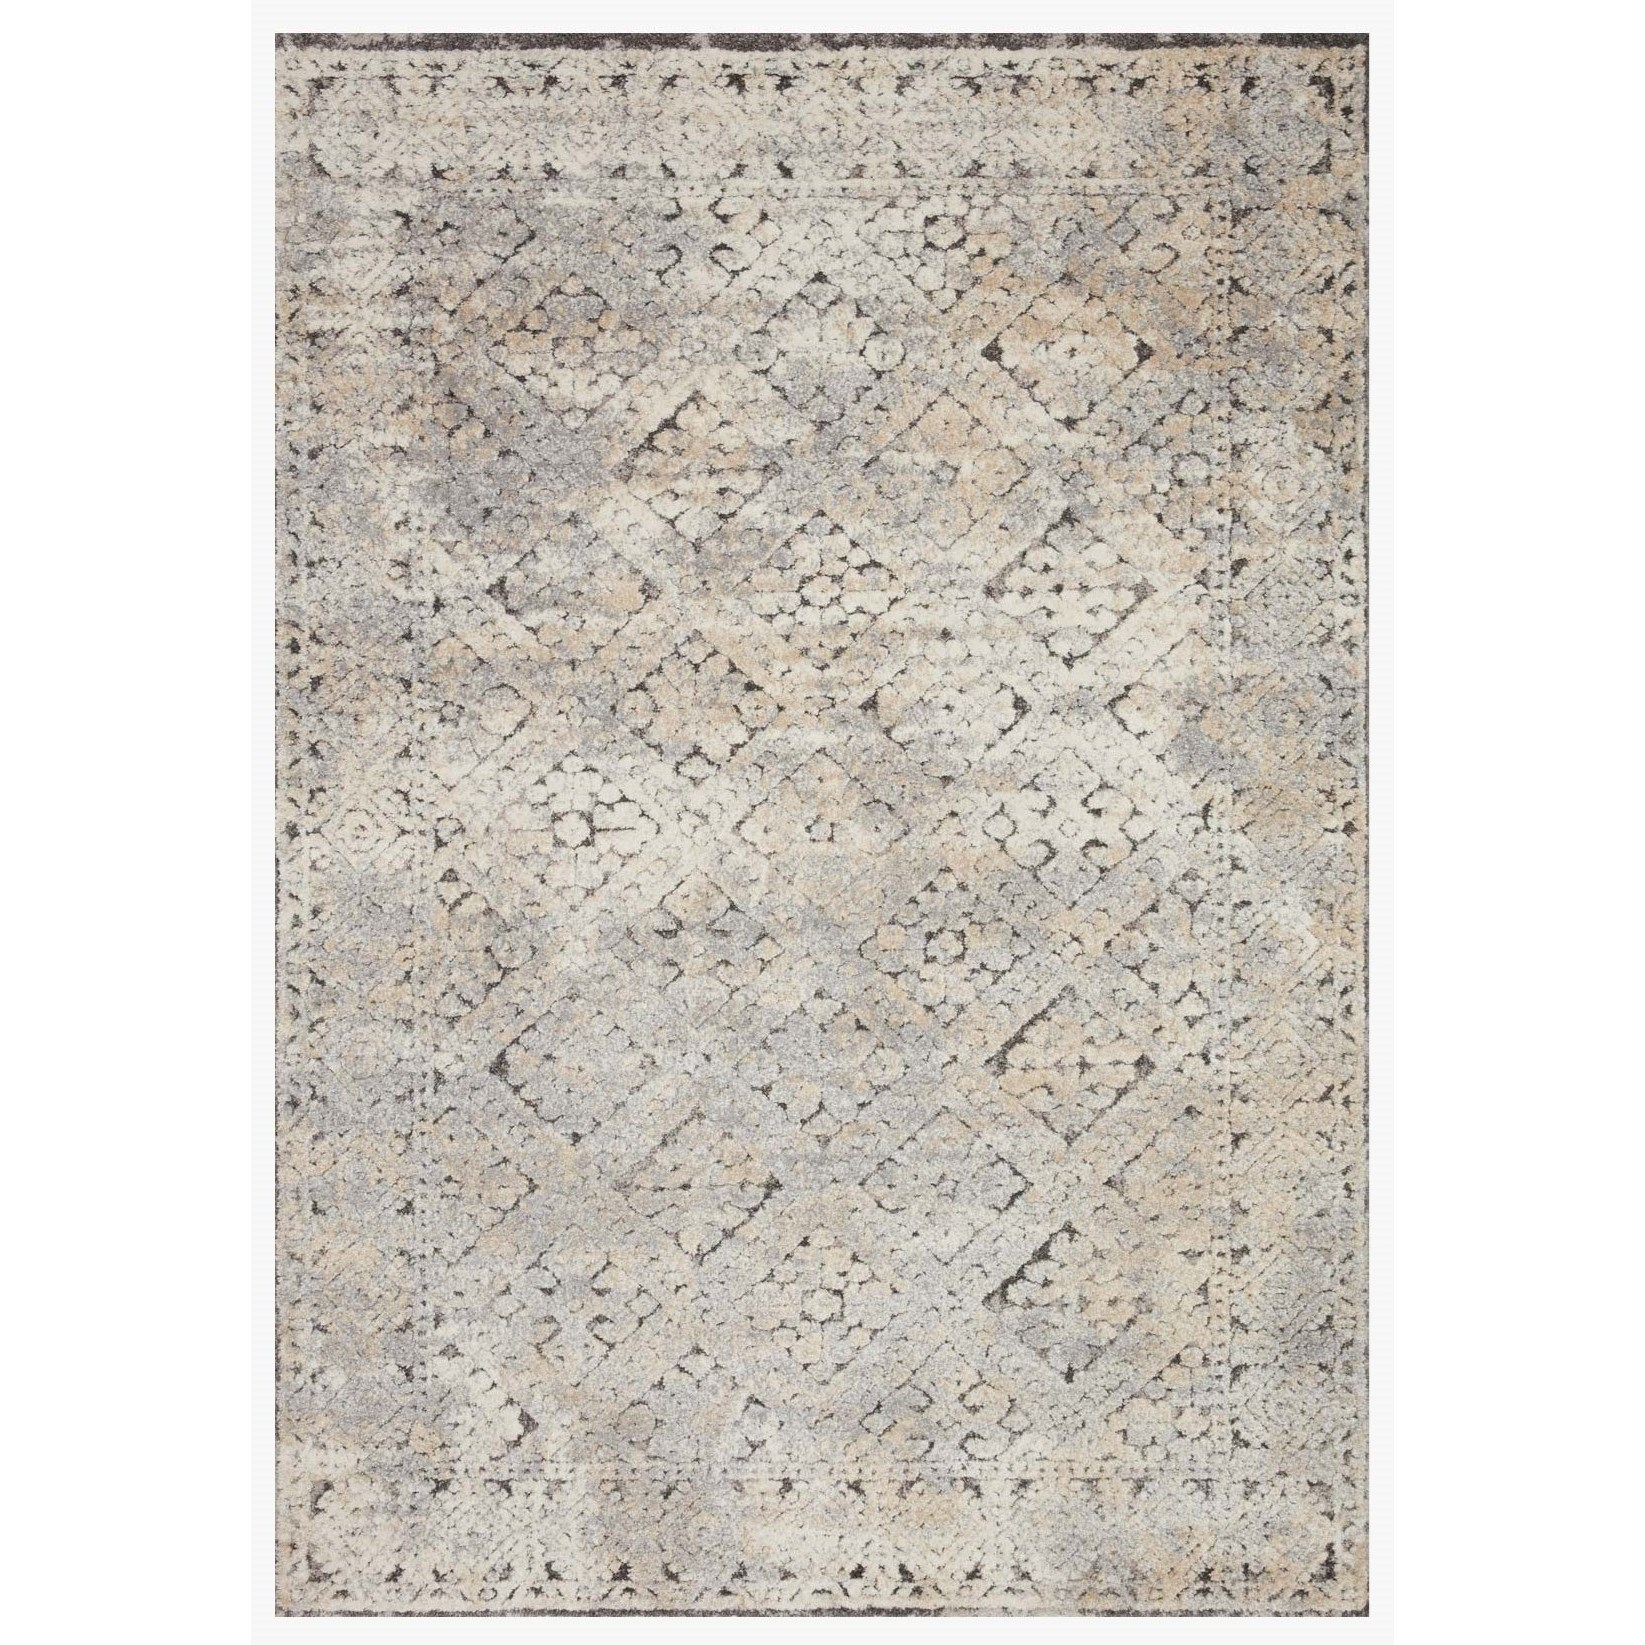 """Theory 2'7"""" x 13' Grey / Sand Rug by Loloi Rugs at Sprintz Furniture"""